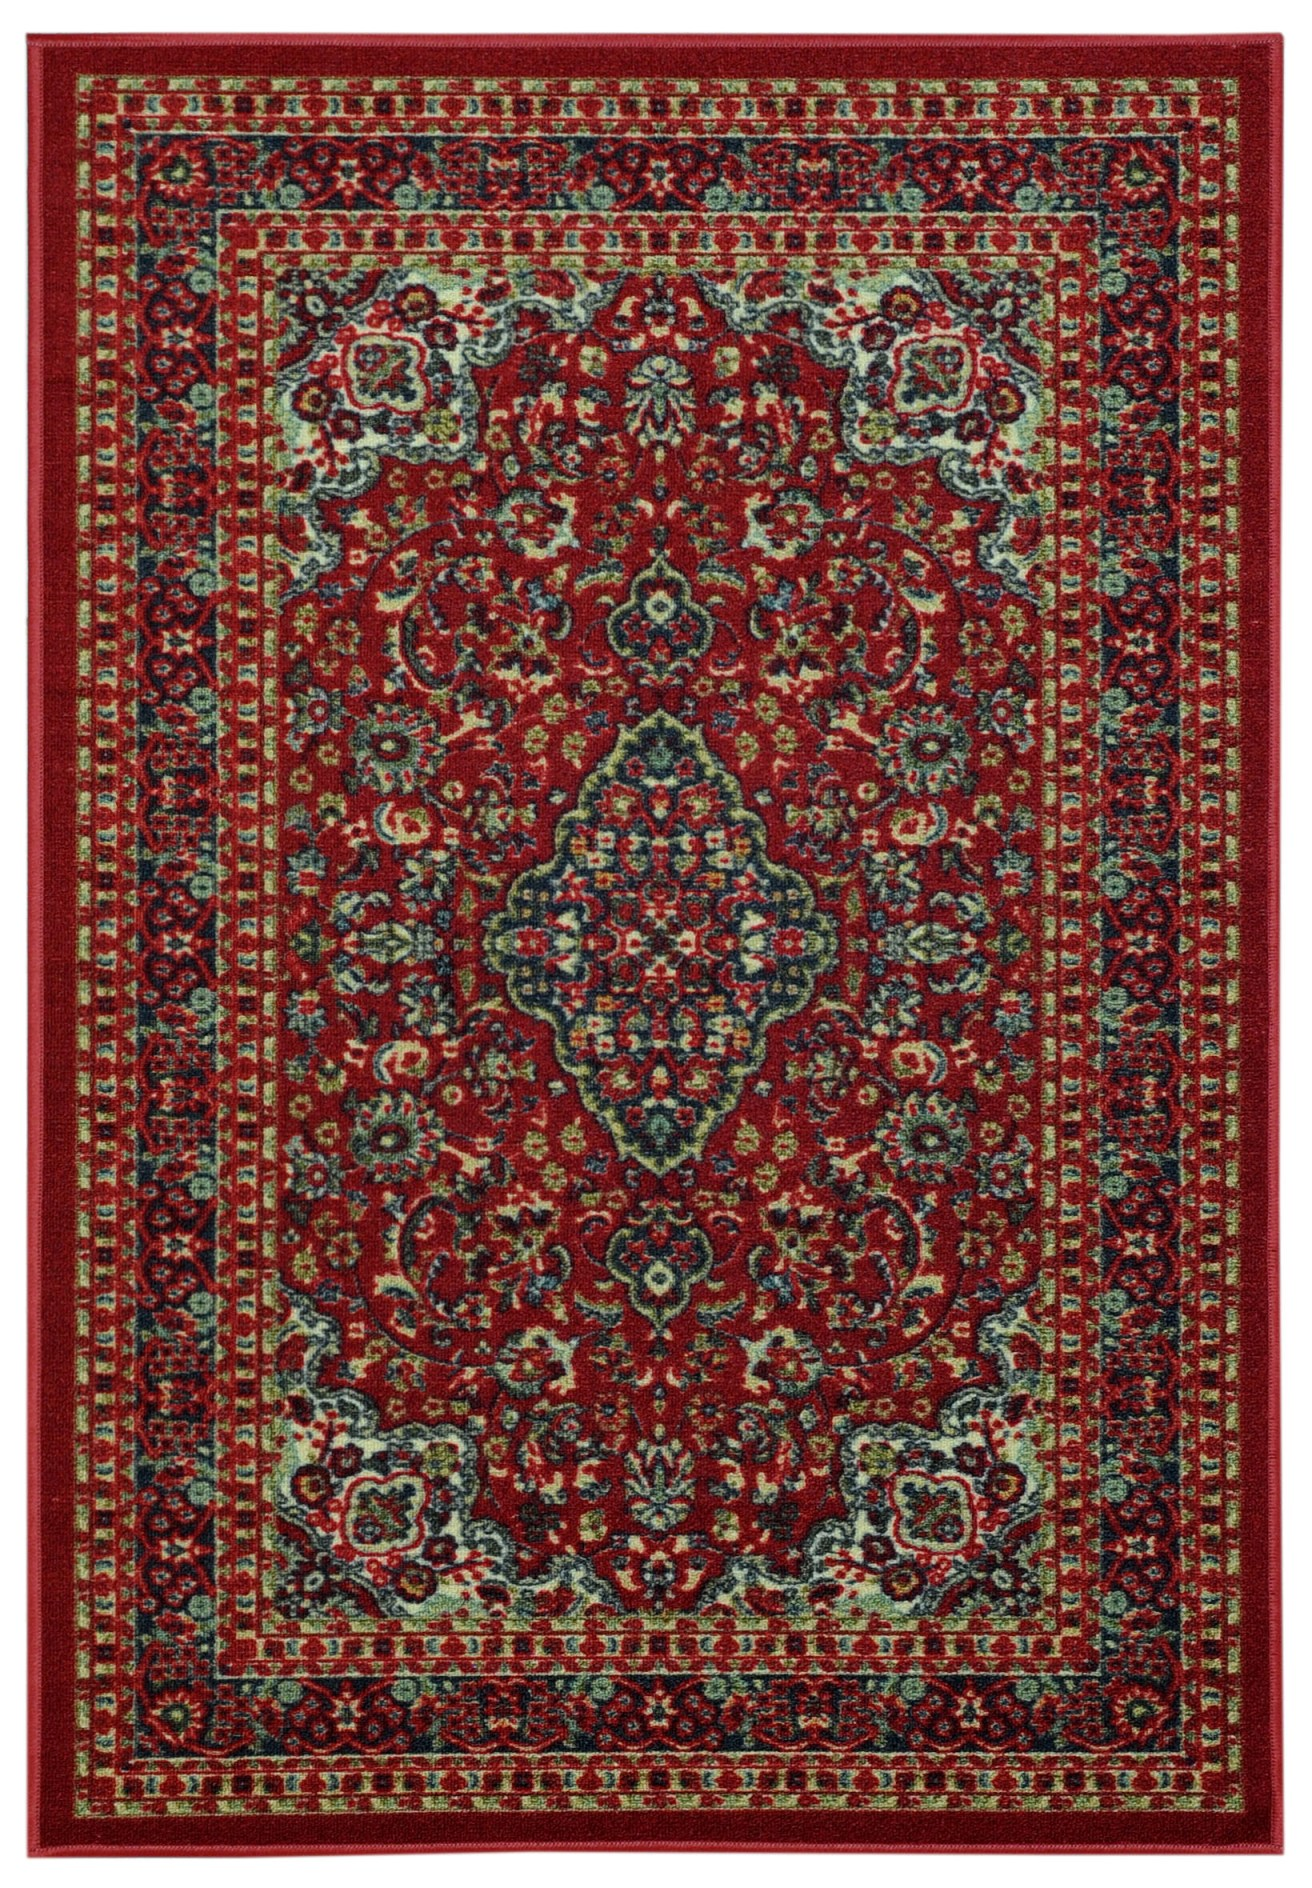 Maxy Home Hamam Collection HA-5030 (Non-Skid) Rubber Back Area Rug 60-inch-by-78-inch 5'x'7' by Rugnur